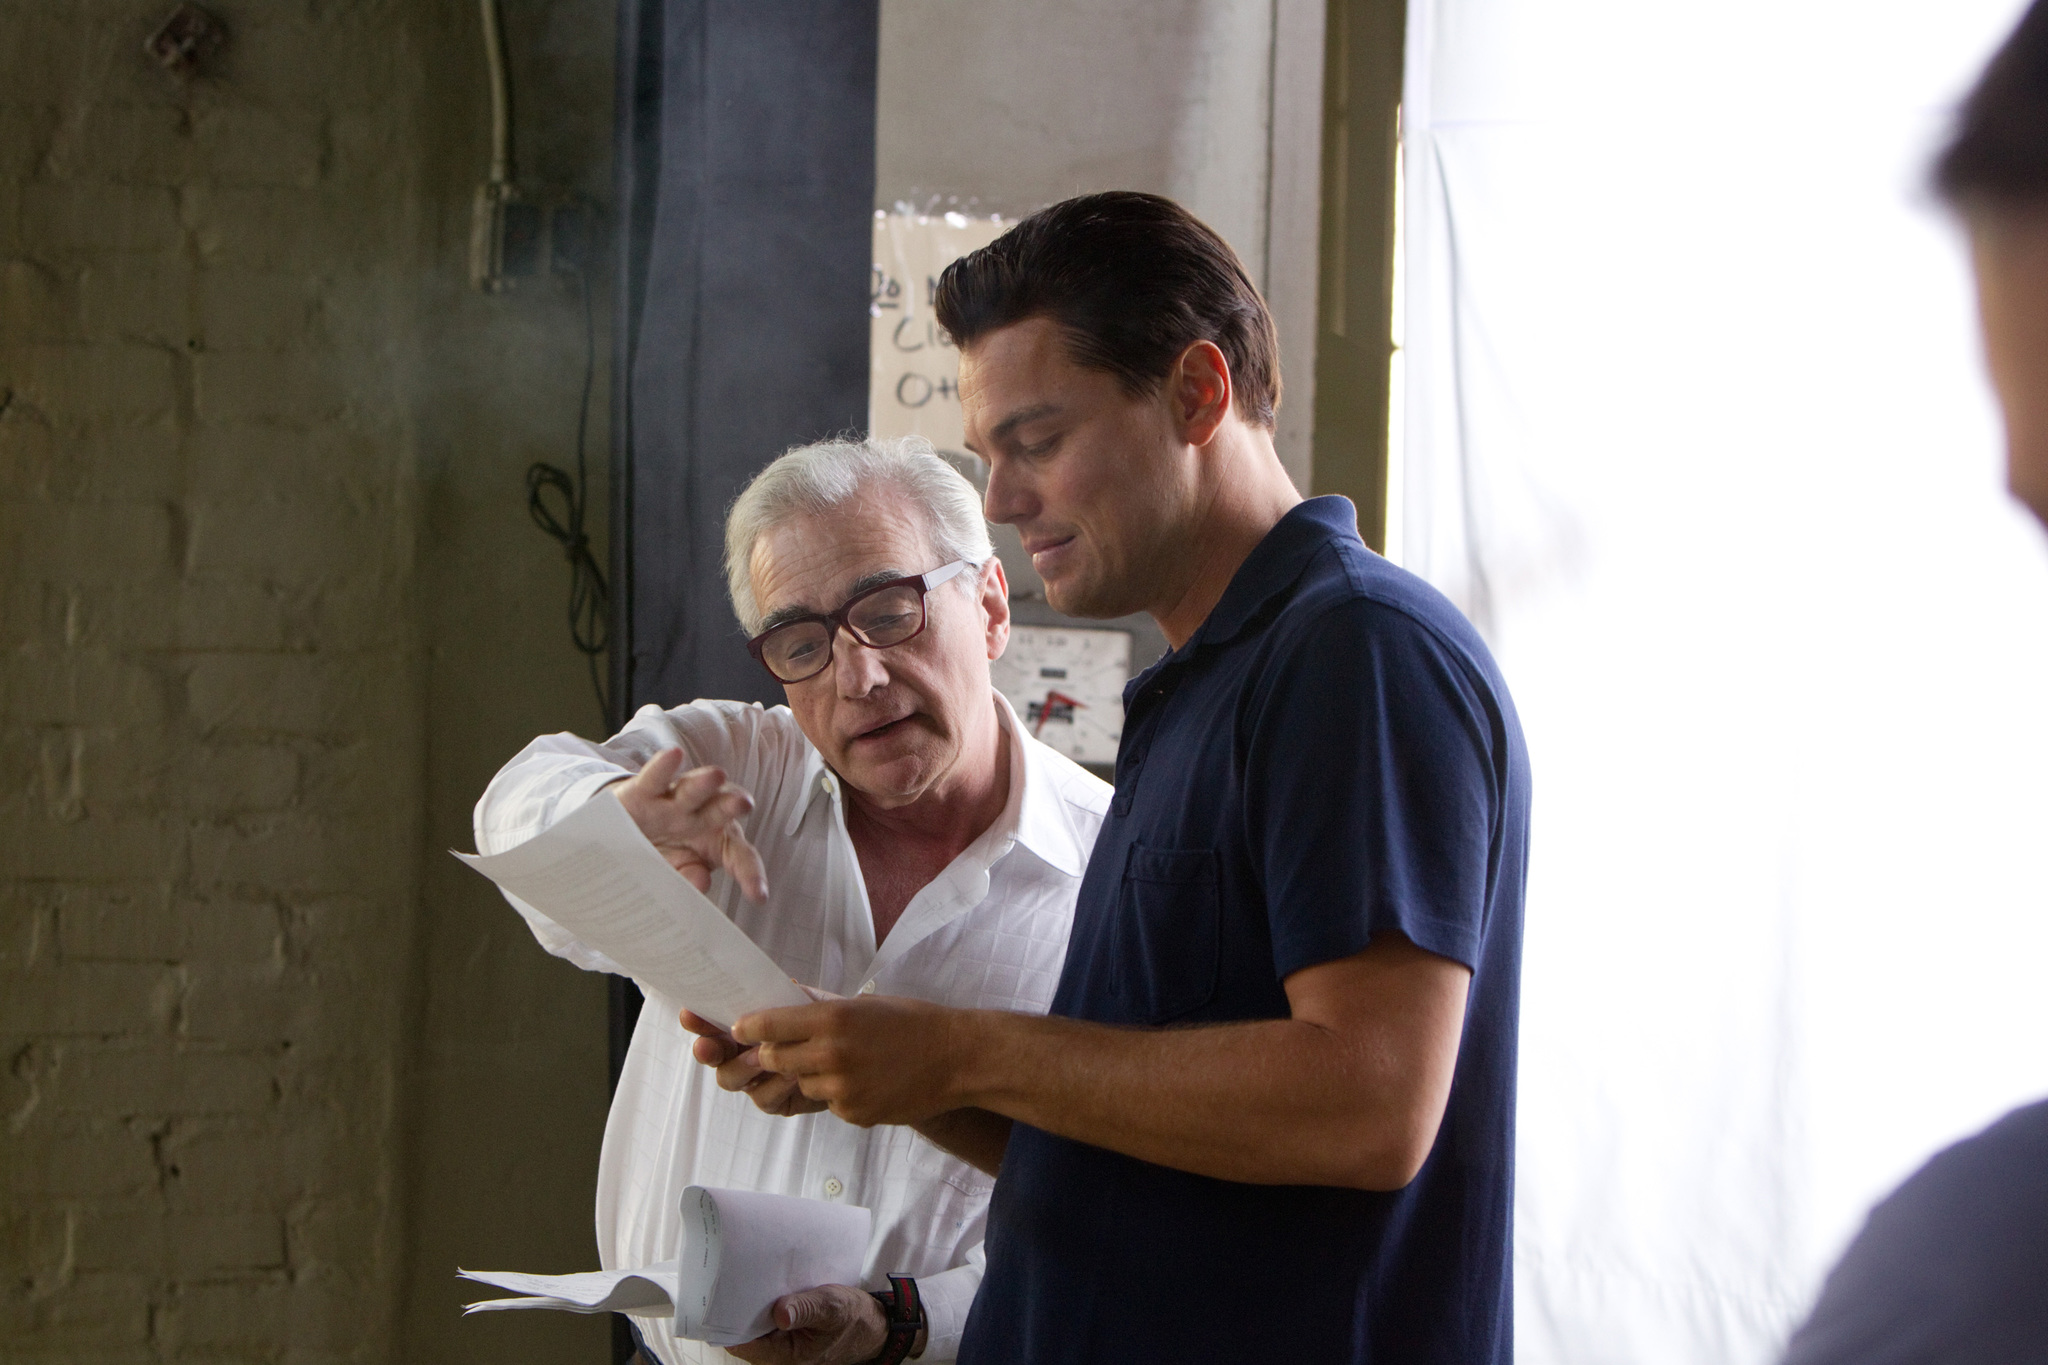 Scorsese and leonardo dicaprio on set of the wolf of wall street